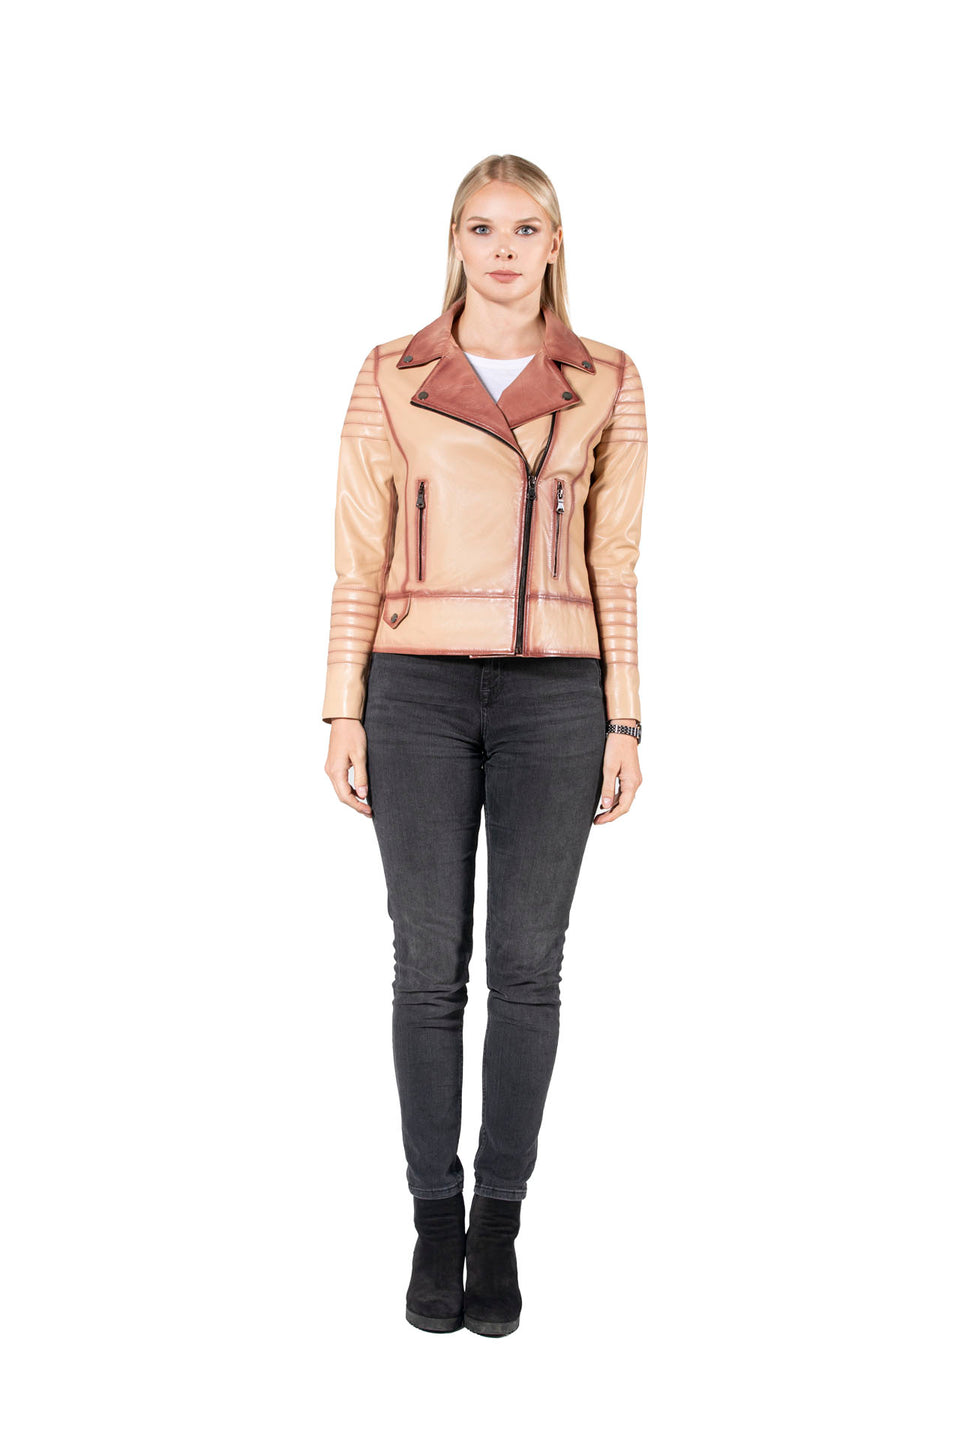 Naomi - Genuine Leather Jacket For Women's